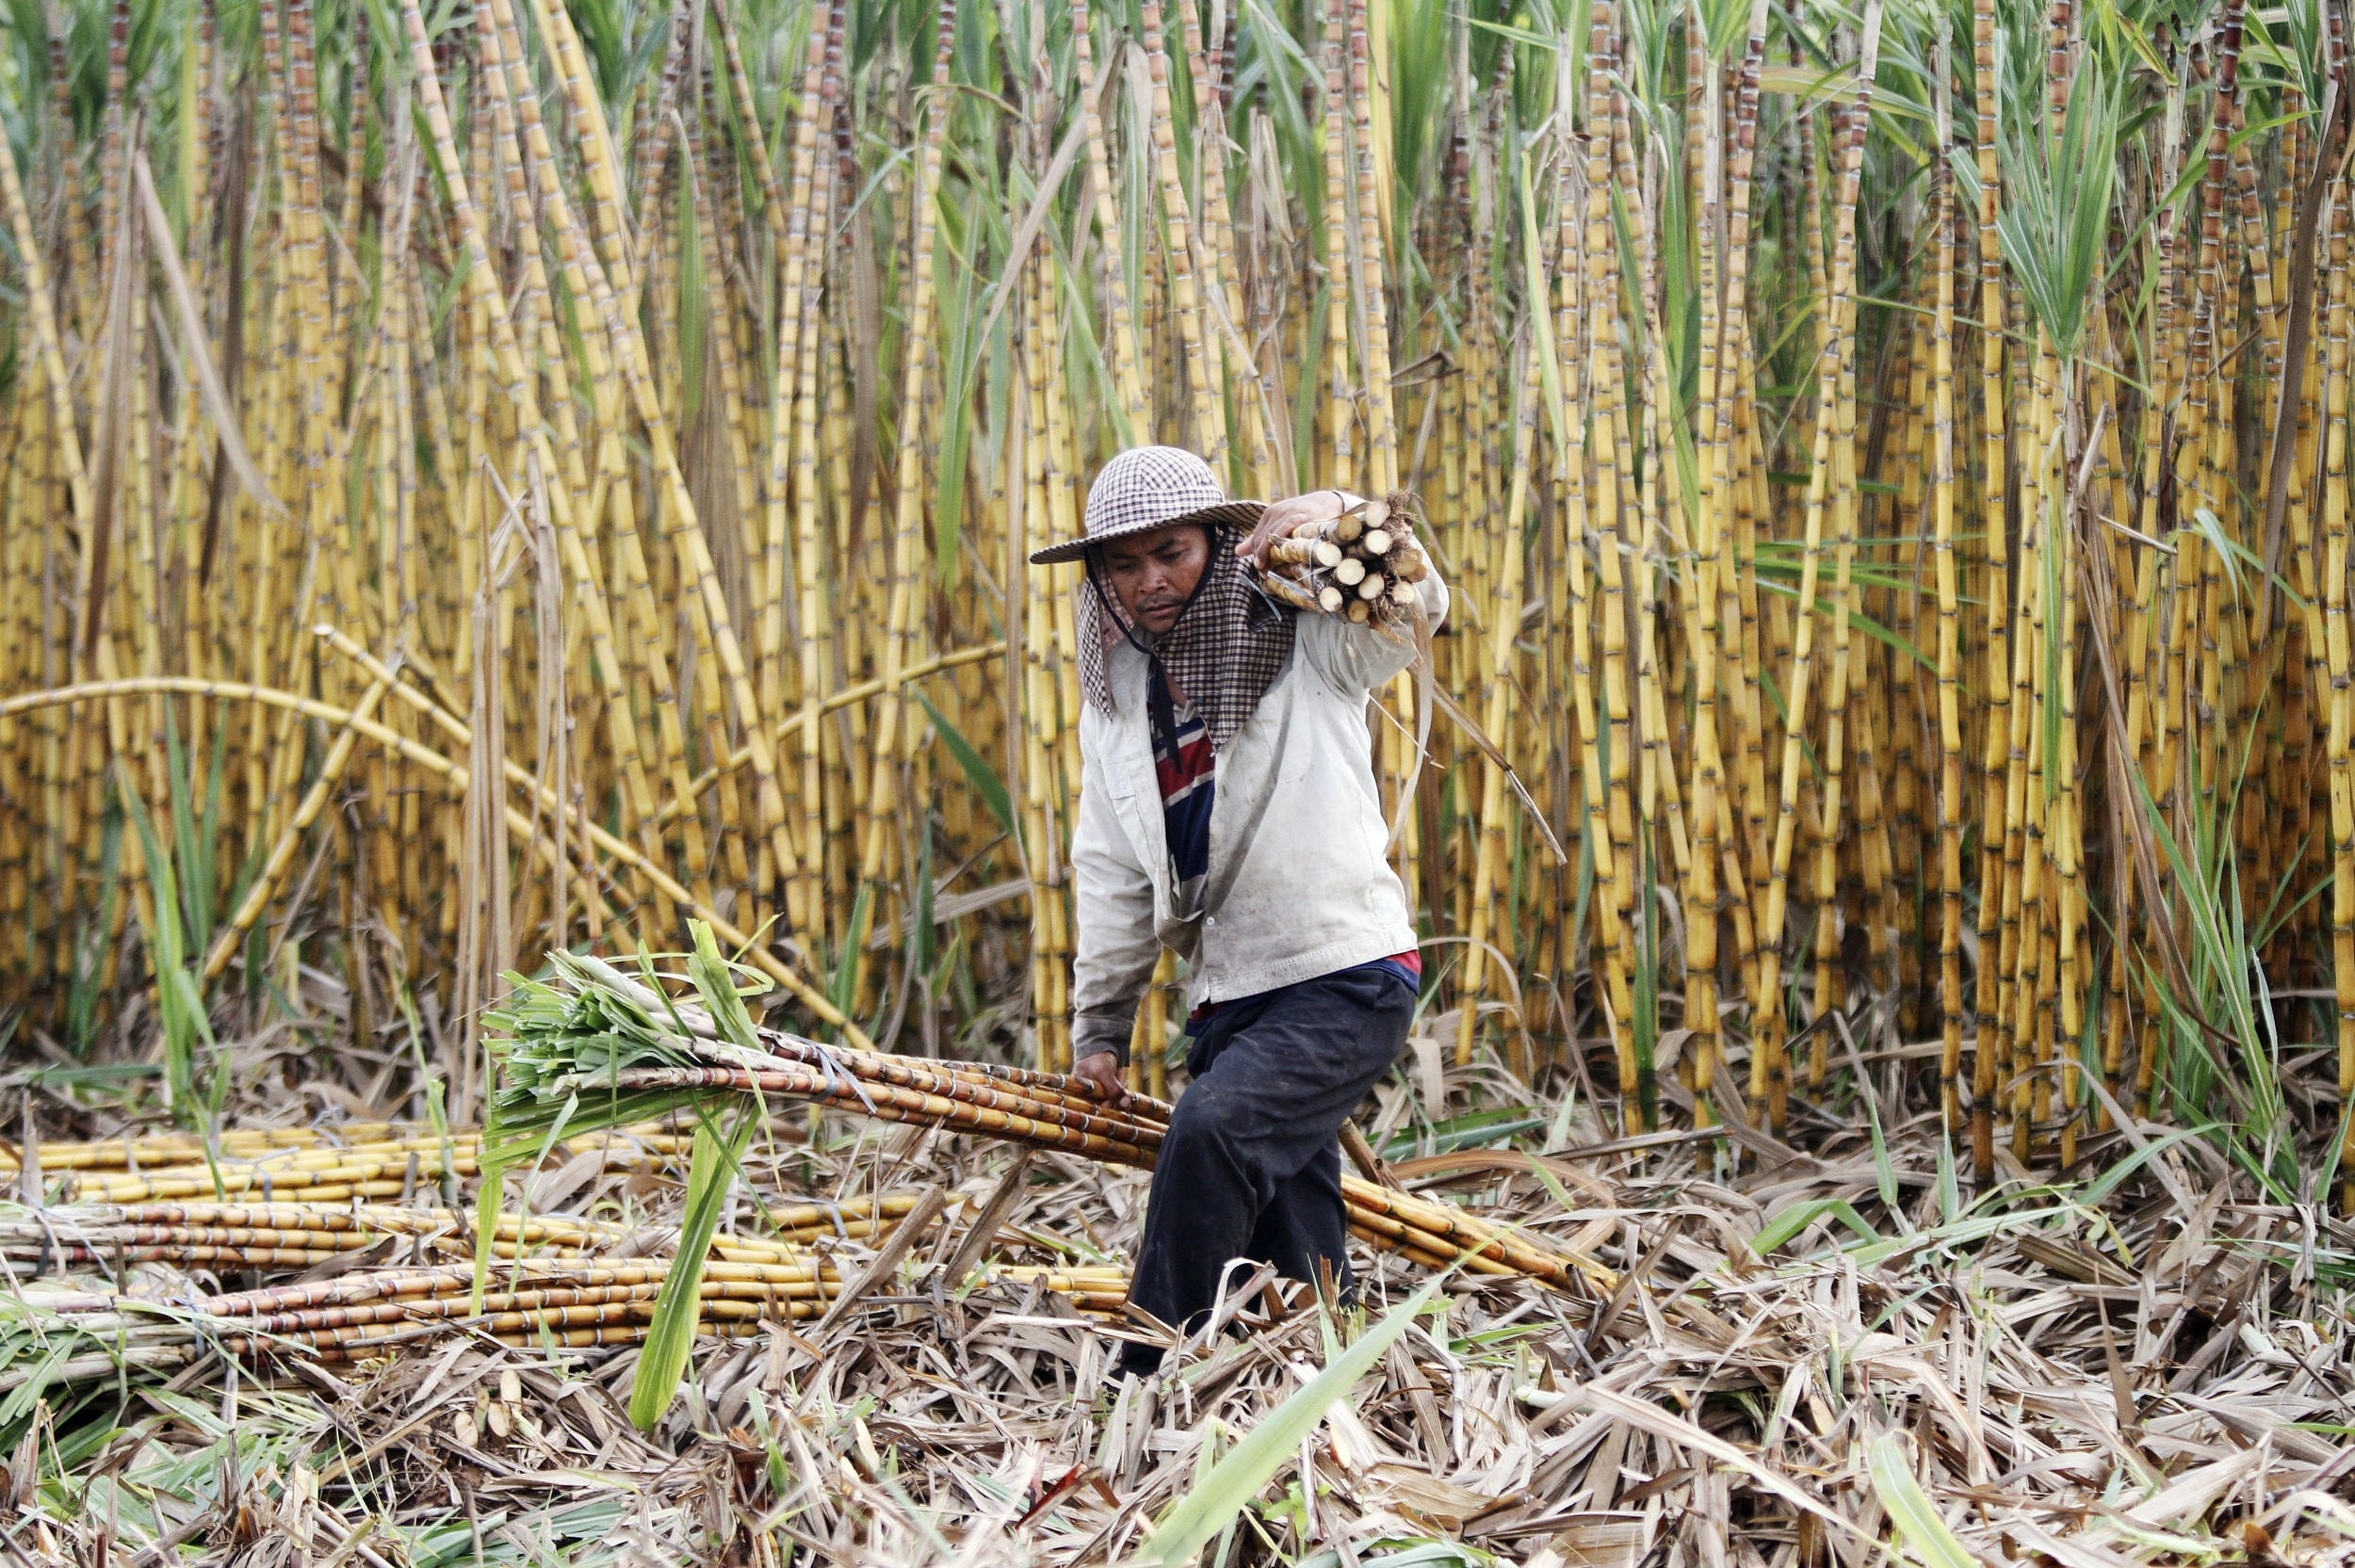 Chinese Sugar Company Leases Parts of Cambodian Land Concession to Farmers